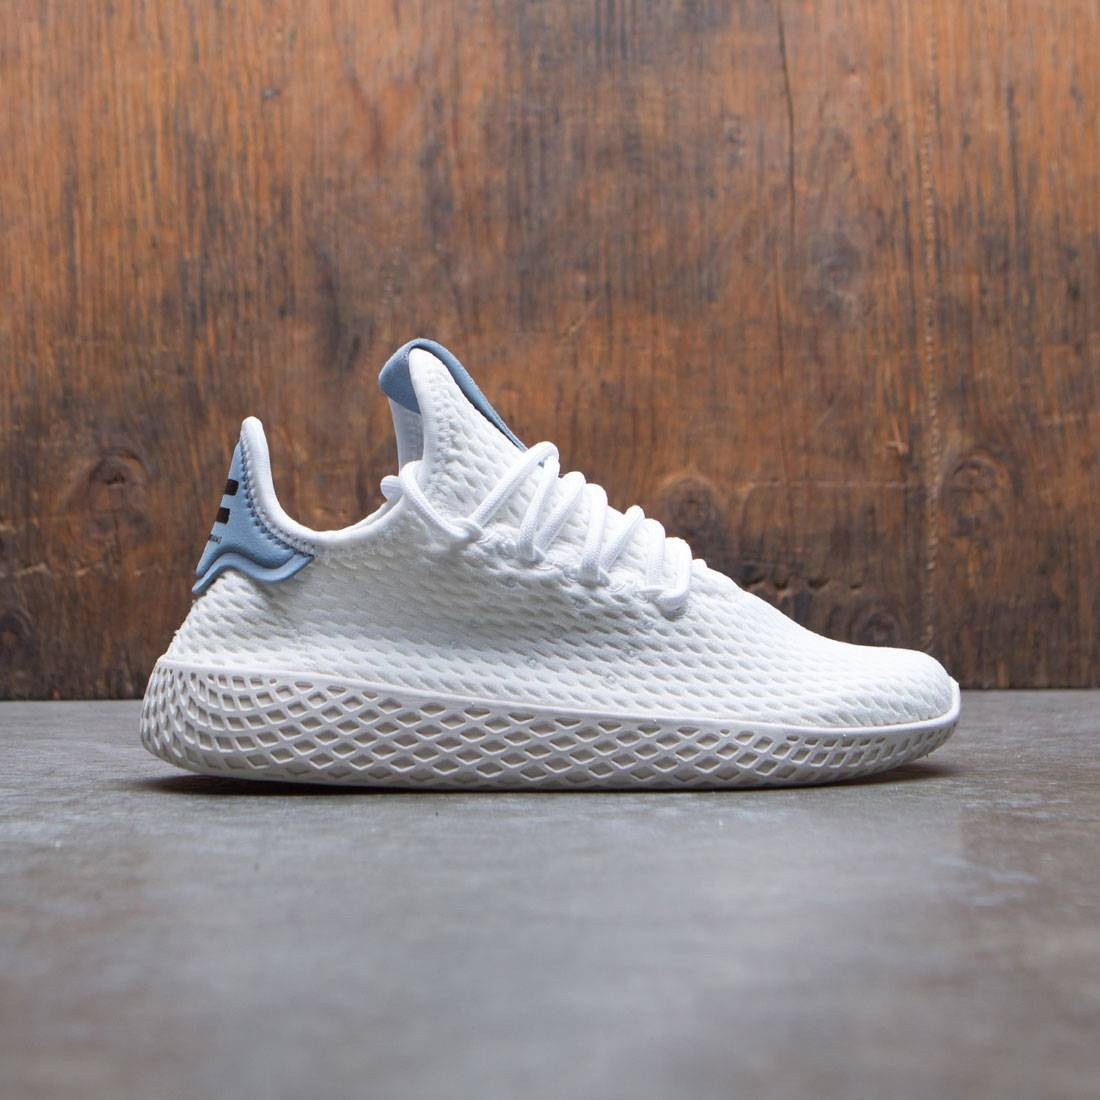 Adidas x Pharrell Williams Big Kids Tennis HU J (white / footwear white / tactile blue)